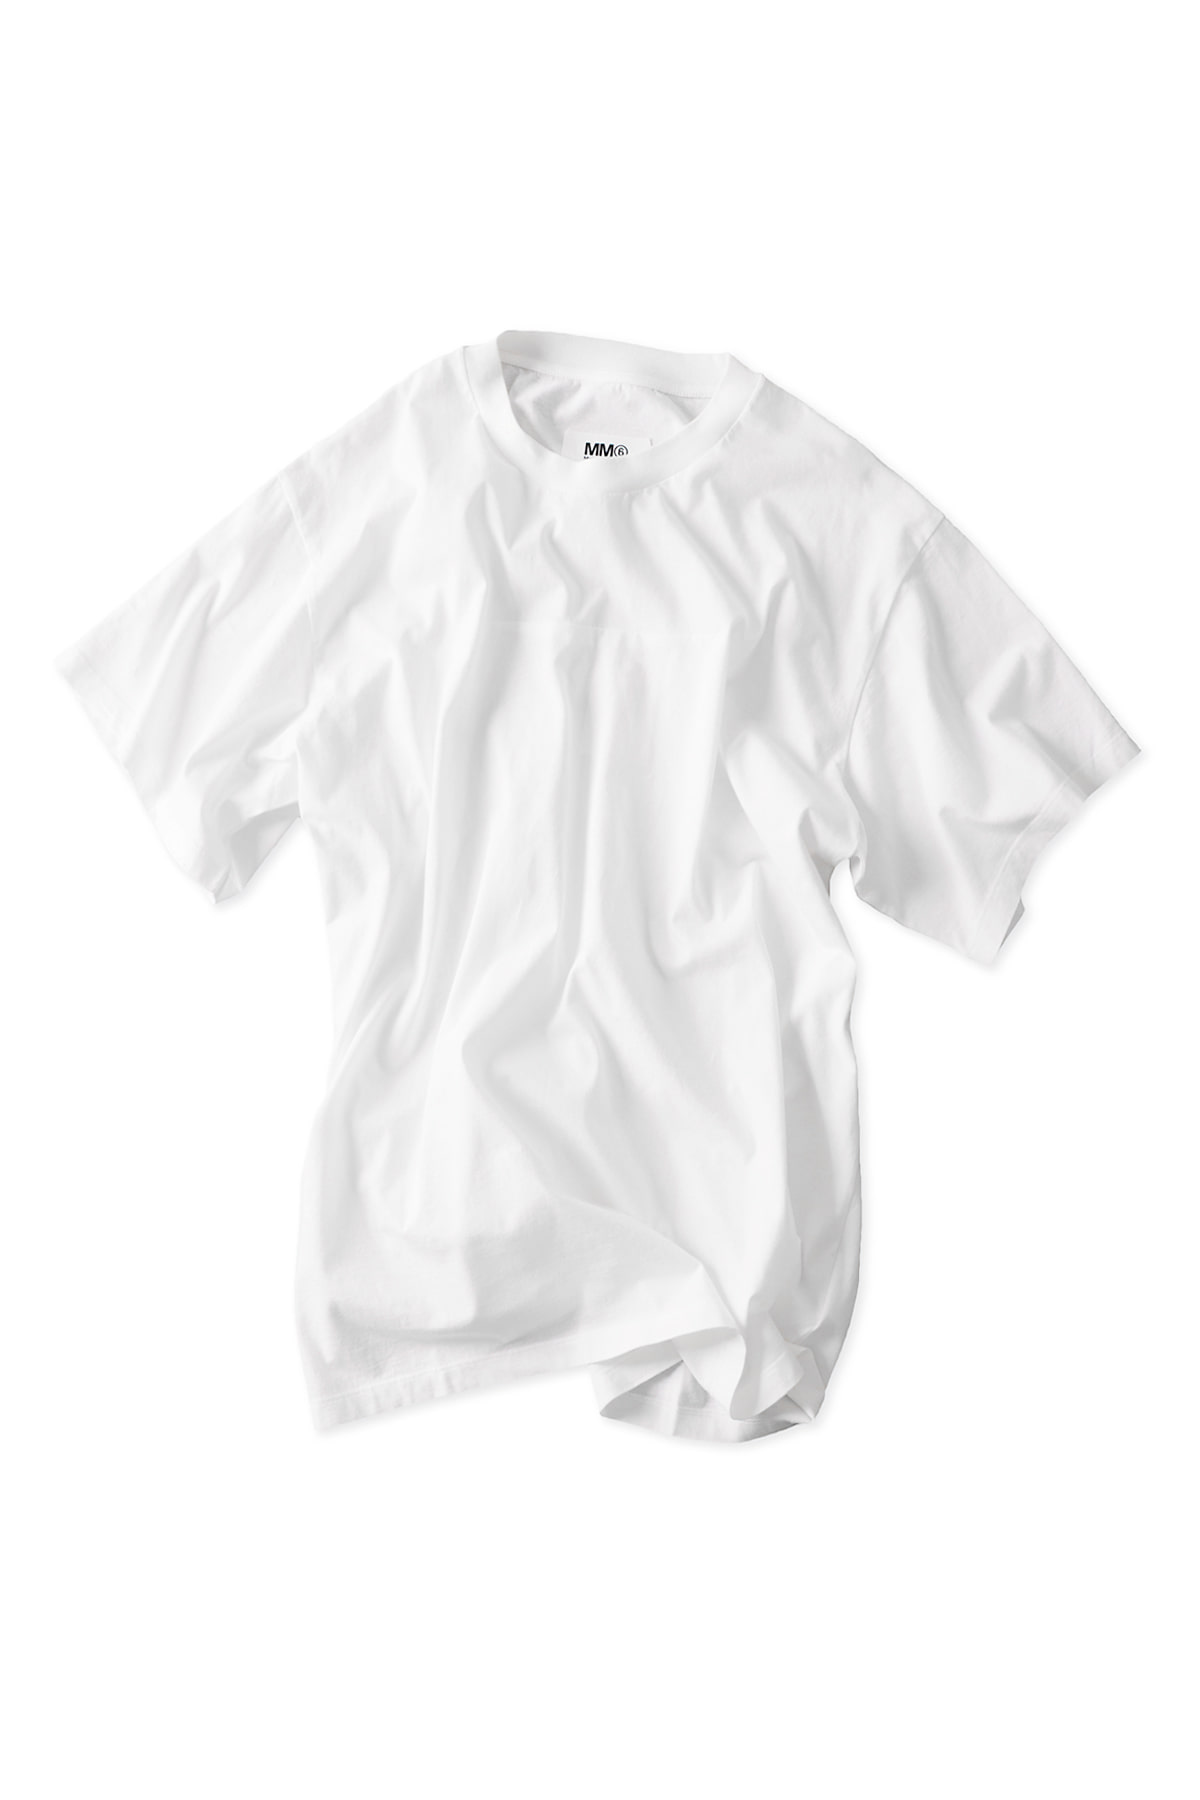 MM6 Maison Margiela : Oversized T-Shirt (White)